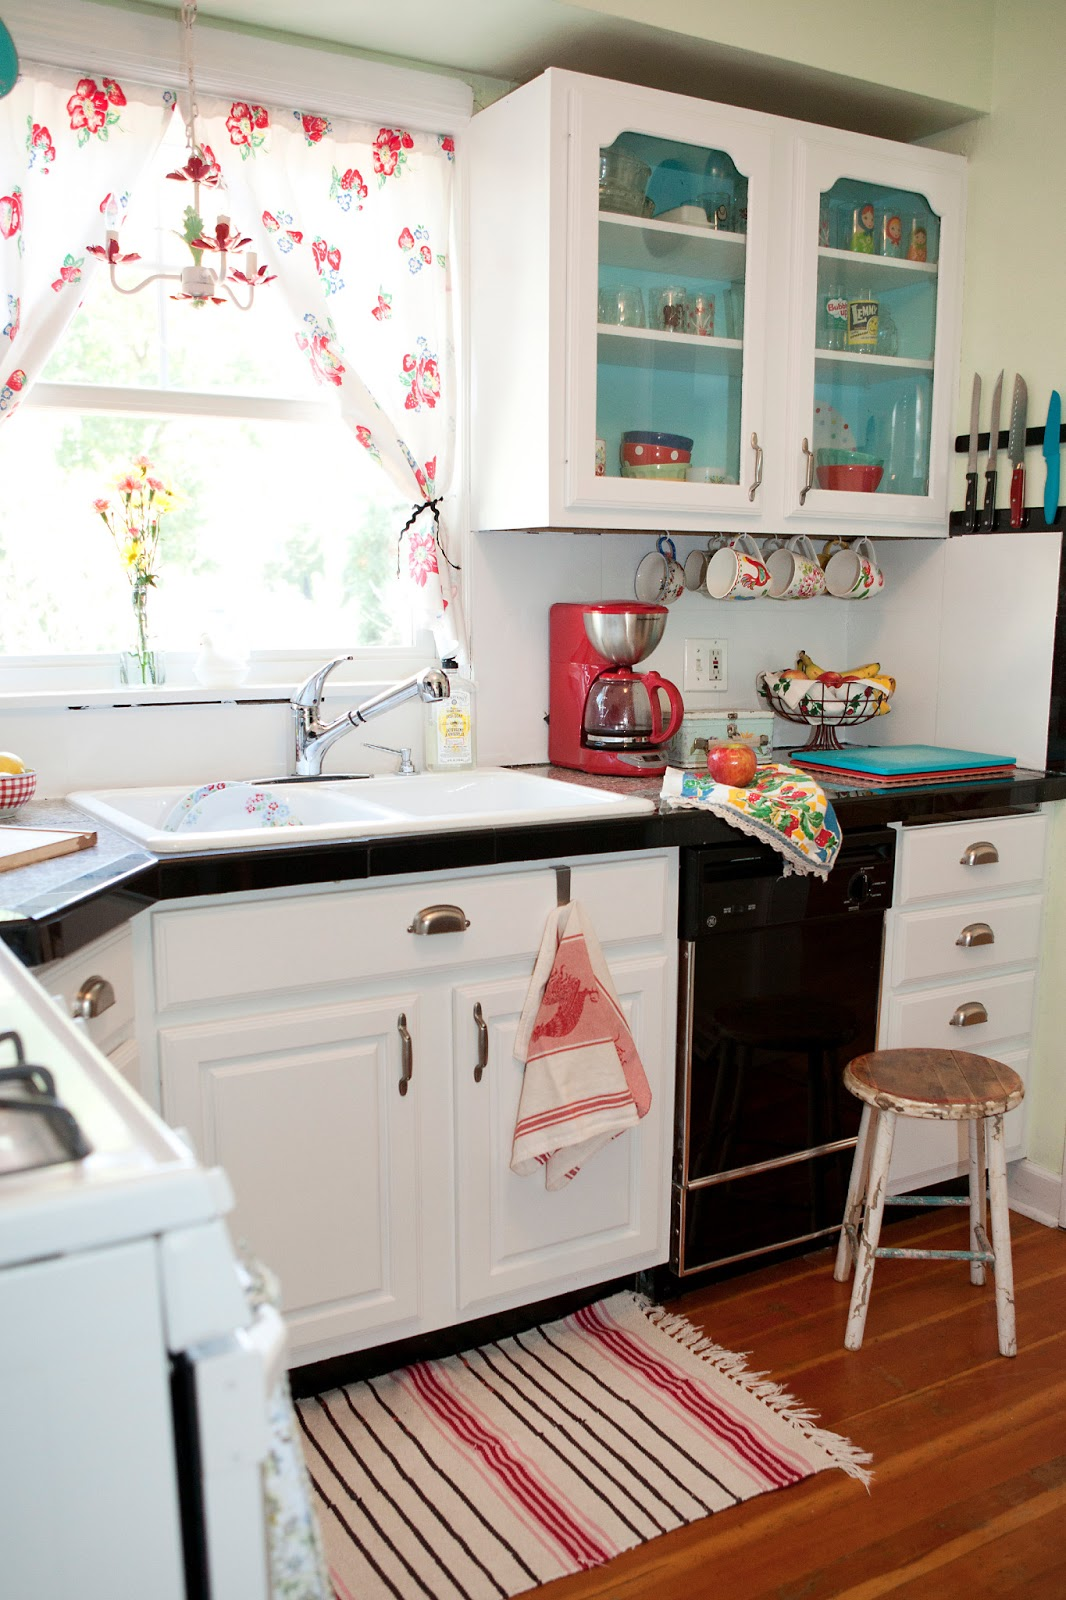 Vintage Kitchen Ideas: A Sort Of Fairytale: Budget Cottage Kitchen